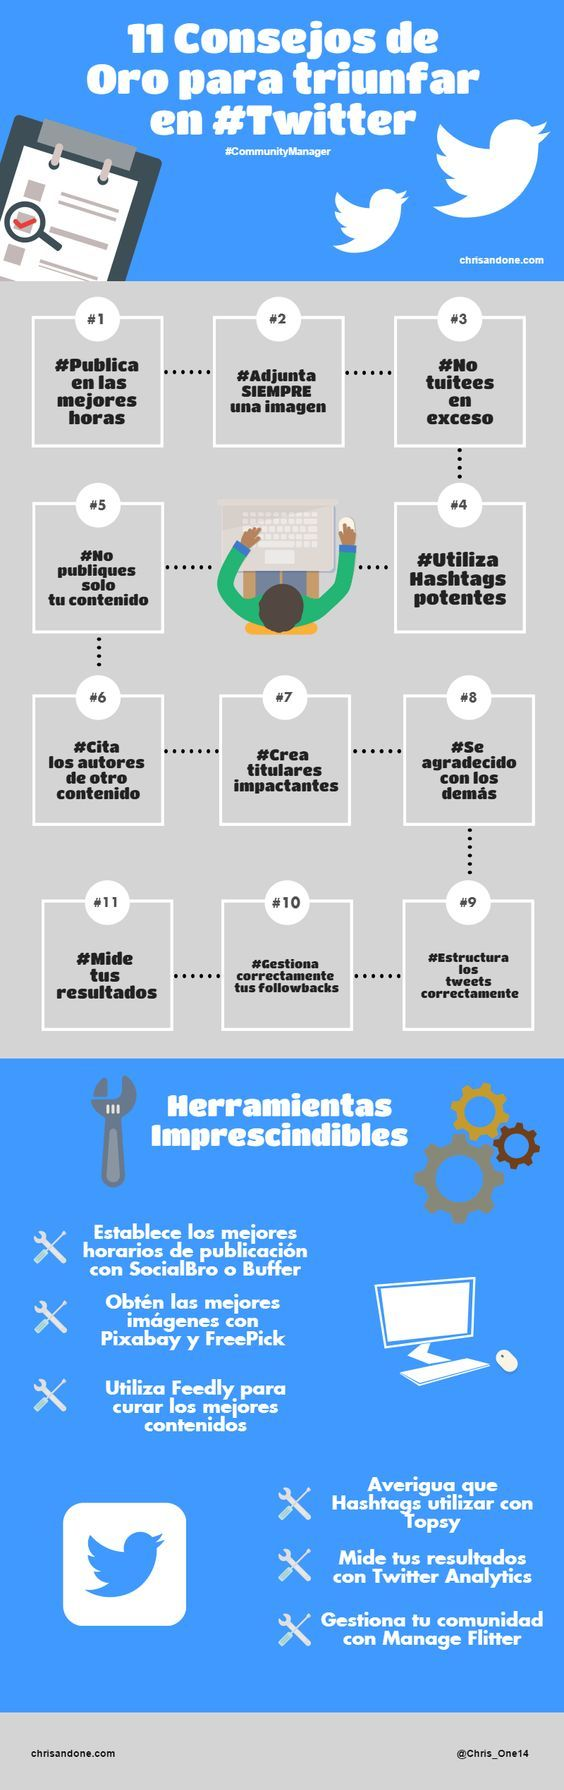 Marketing, tecnología, internet: Infografías imprescindibles